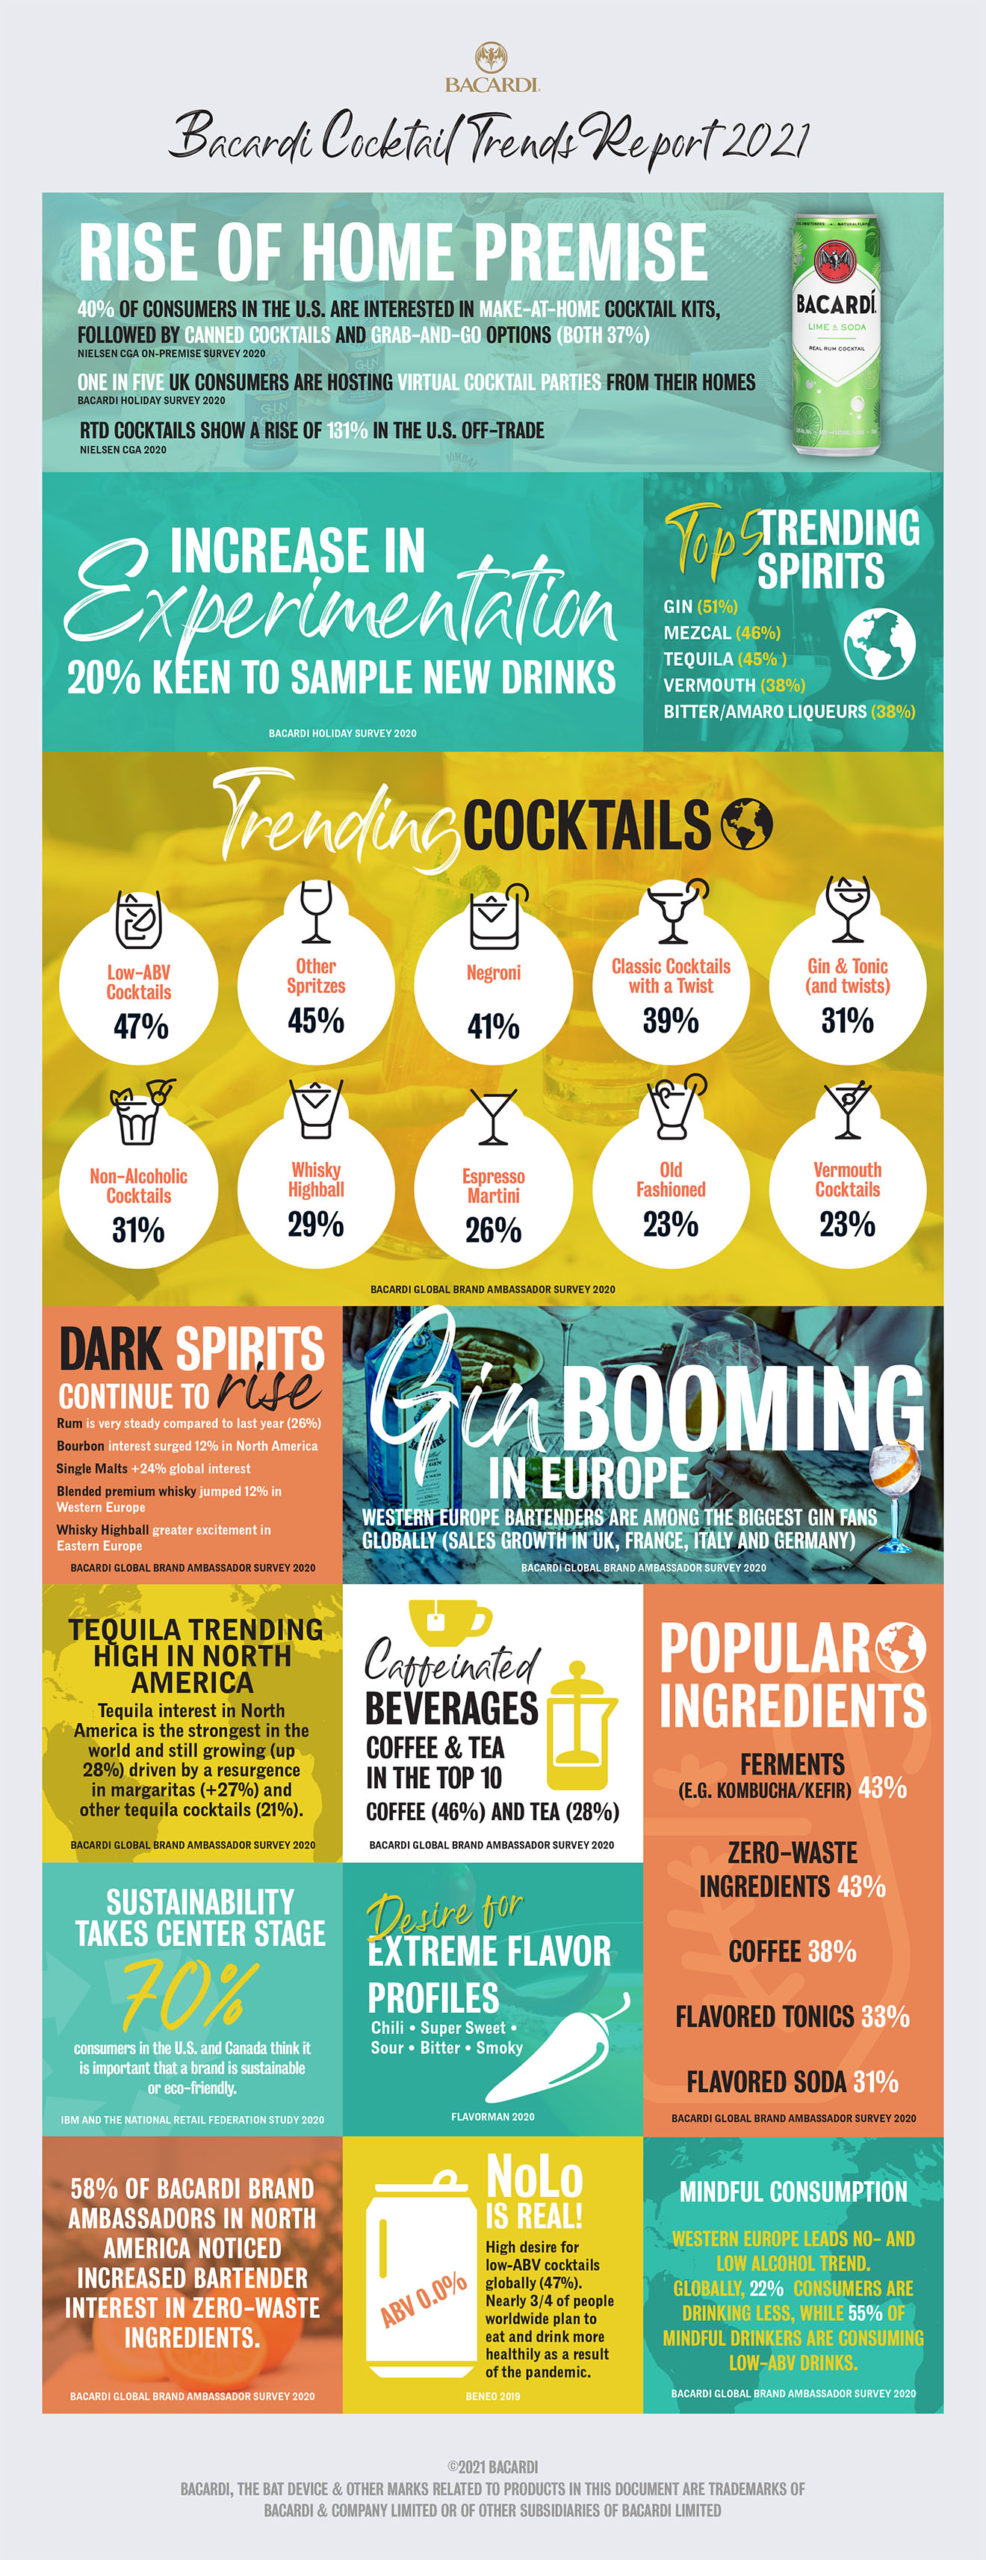 Bacardi 2021 Cocktail Trends Report_Infographic